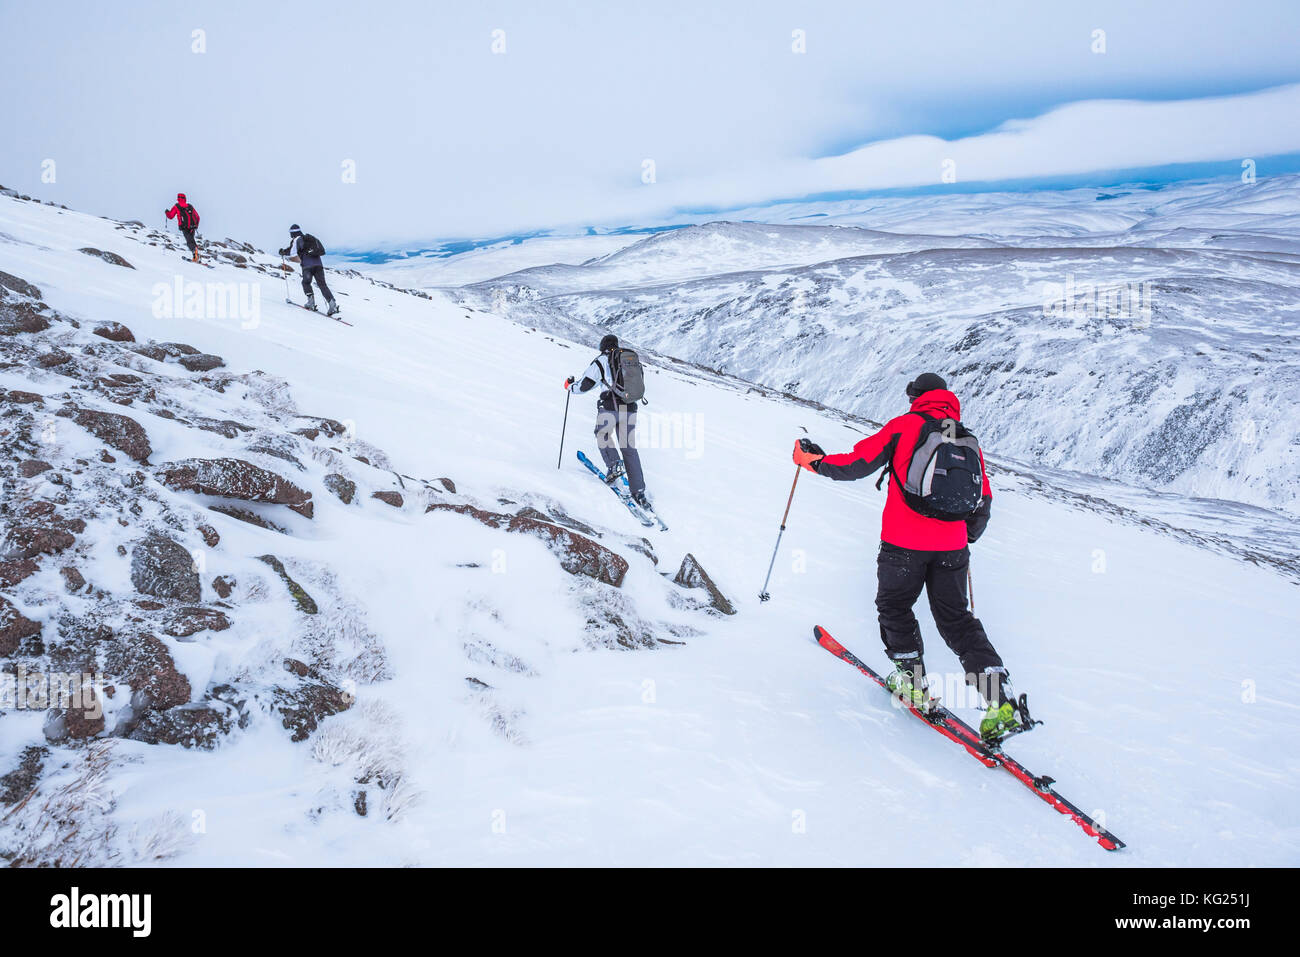 Ski touring at CairnGorm Mountain Ski Resort, Aviemore, Cairngorms National Park, Scotland, United Kingdom, Europe - Stock Image